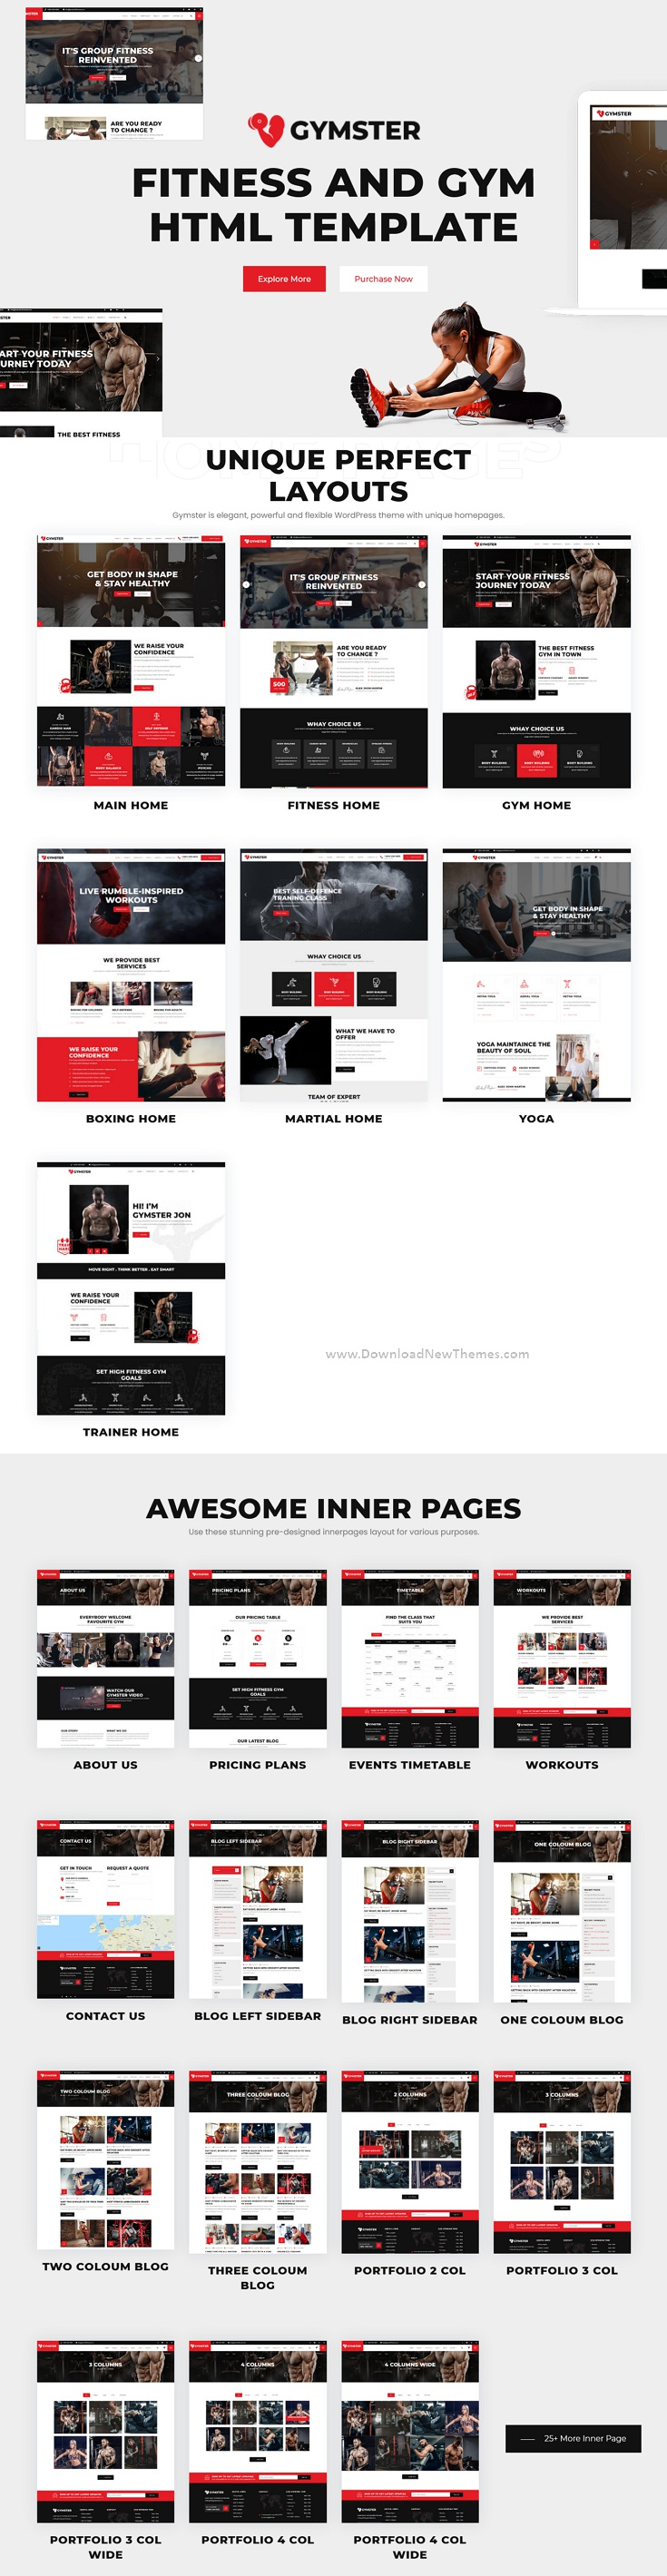 Fitness and Gym HTML5 Template